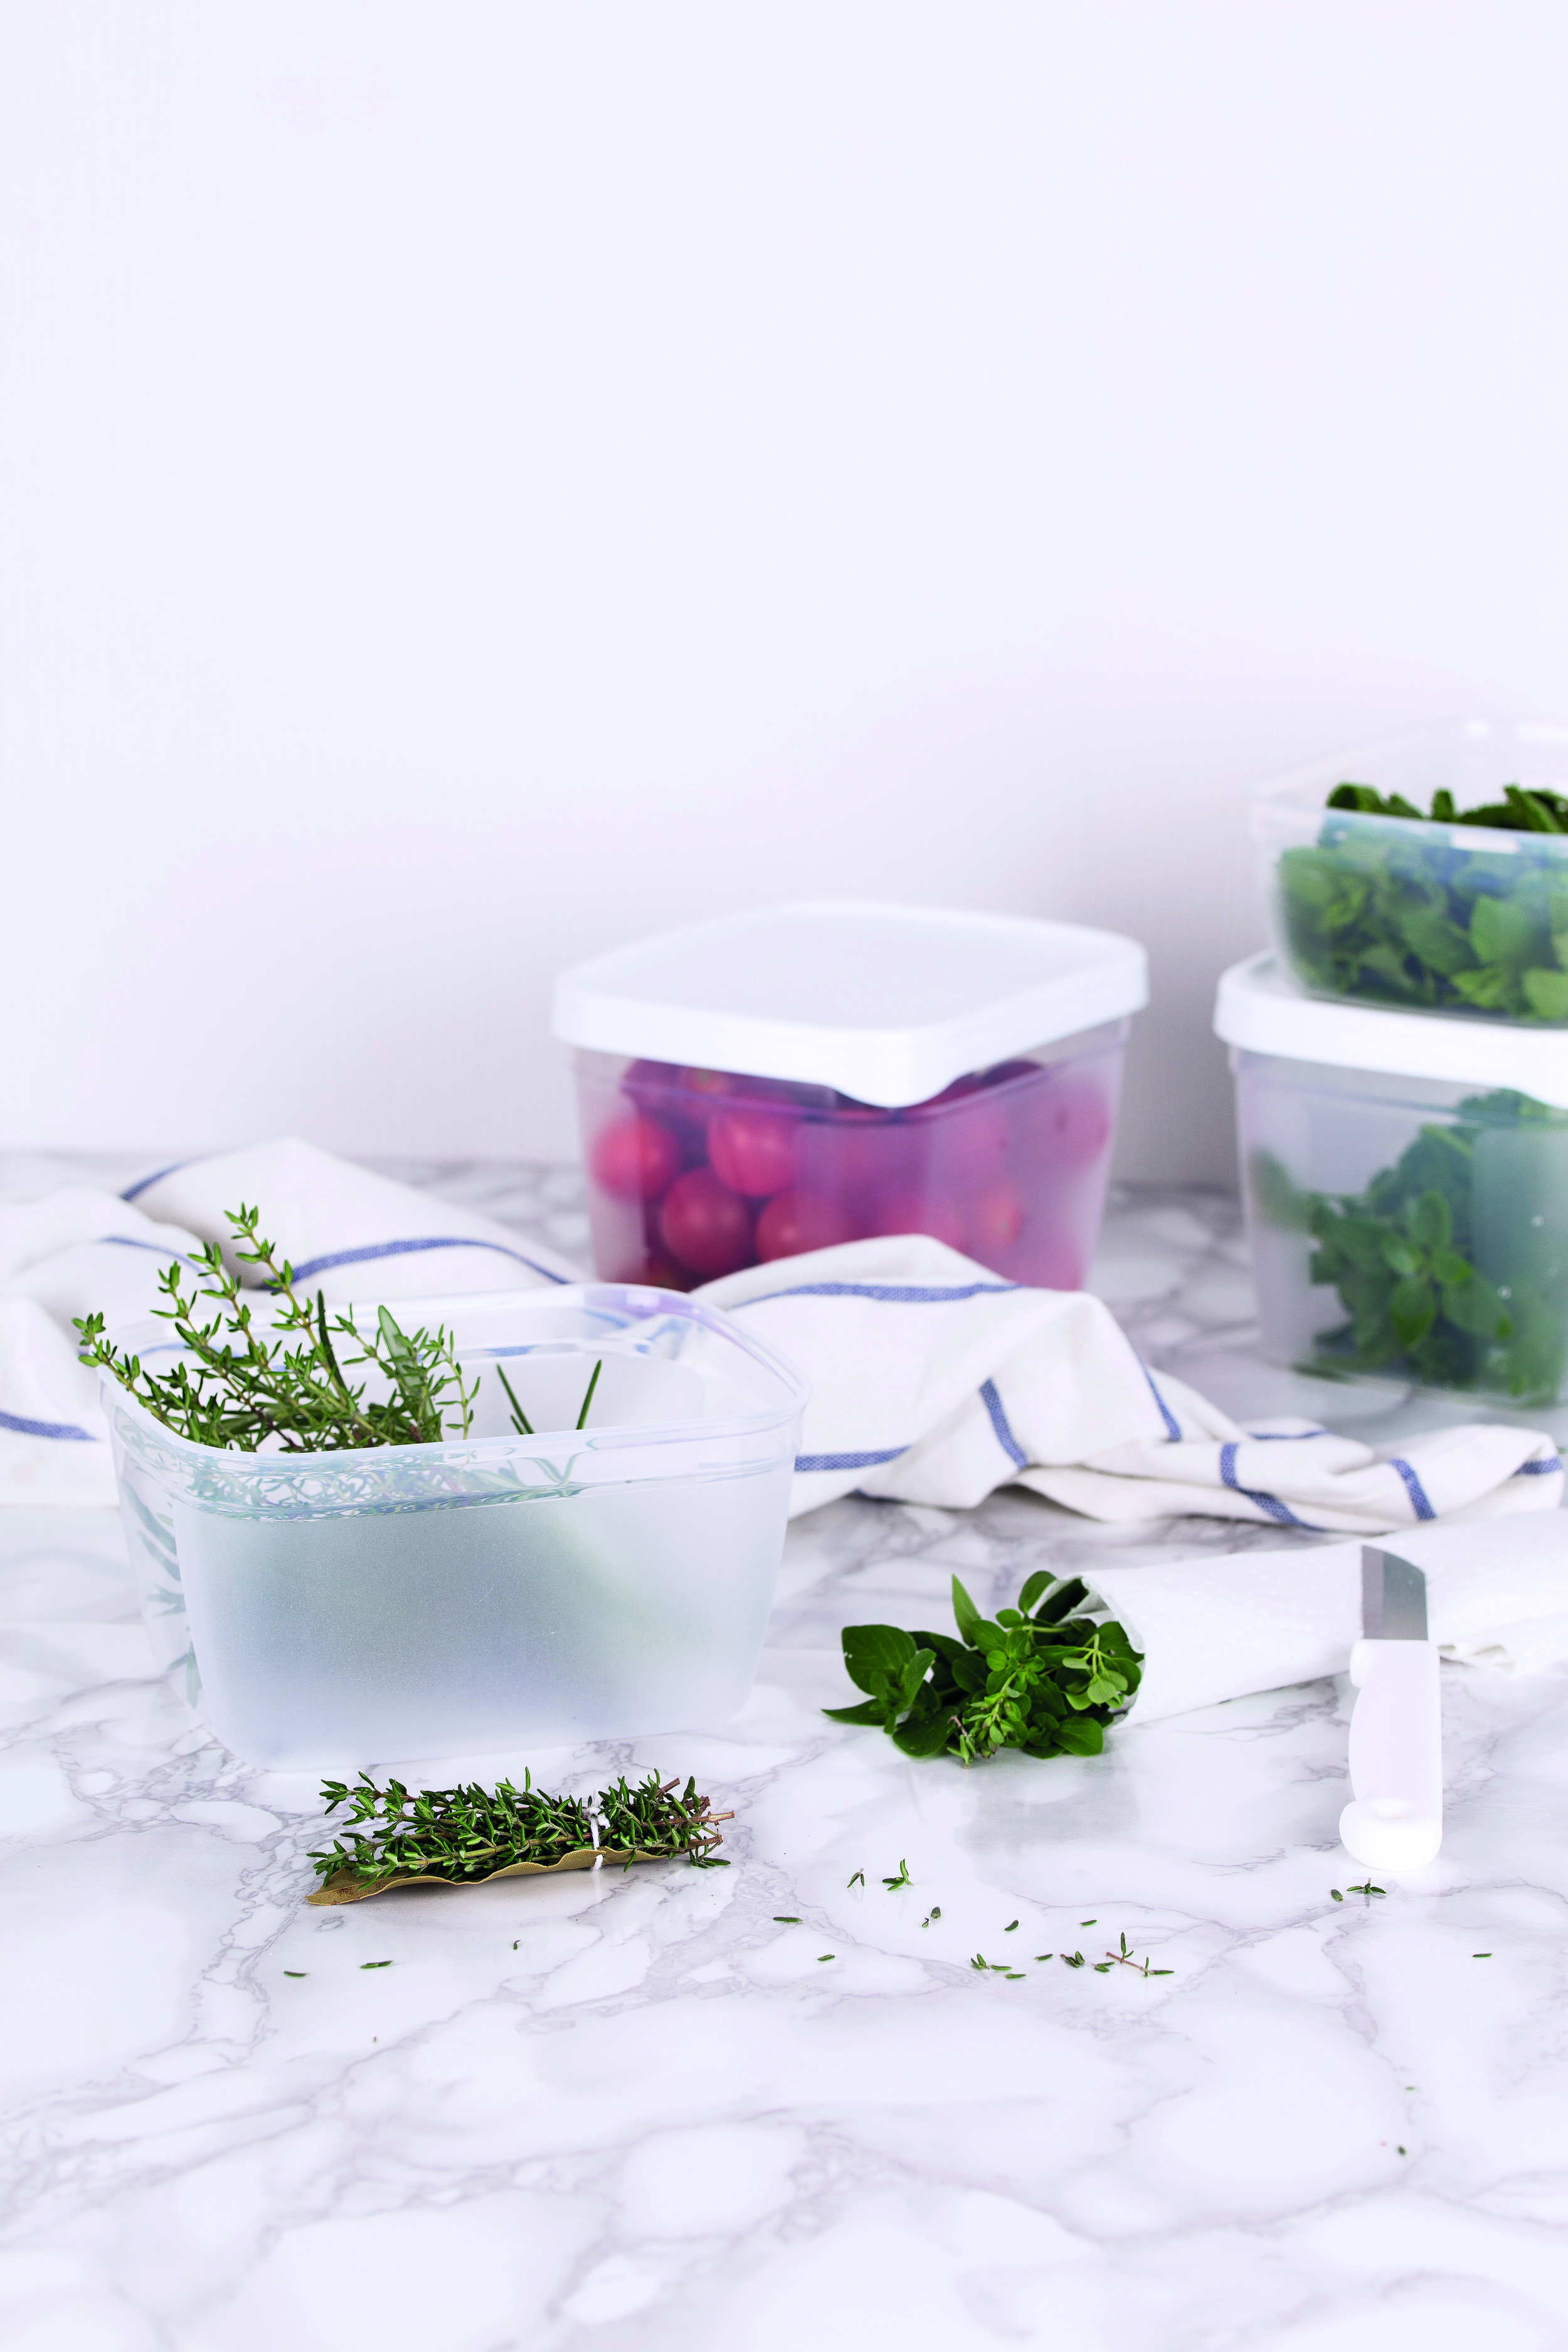 Amuse Tip - .... TIP 1 Want to keep your herbs fresh for as long as possible? Wrap them in damp kitchen roll and they will remain fresh for days. .. CONSEIL 1 Conserver vos fines herbes fraîches le plus longtemps possible ? Emballez-les dans de l'essuie-tout humide. Elles resteront fraîches de nombreux jours encore. .. TIP 1 Verse kruiden bewaar je graag zo lang mogelijk. Wikkel ze in vochtig keukenpapier, dan blijven ze nog dagen goed. .. TIPP 1 Frische Kräuter bewahren Sie gern so lange wie möglich. Wickeln Sie sie in feuchtes Küchenpapier, dann bleiben sie noch tagelang frisch. .... .... TIP 2 Made a salad with avocado? Store the cut avocado in the fridge together with some slices of onion. Strange but true: in doing so the avocado will retain its colour for longer. .. CONSEIL 2 Une petite salade à l'avocat ? Conservez au frigo le fruit découpé avec un oignon coupé. Curieux mais vrai : l'avocat conservera ainsi sa couleur plus longtemps. .. TIP 2 Slaatje gemaakt met avocado? Bewaar het aangesneden stuk samen met gesneden ui in de koelkast. Raar maar waar: de avocado behoudt zo langer zijn kleur. .. TIPP 2 Salat mit Avocado gemacht? Bewahren Sie das angeschnittene Stück mit einer geschnittenen Zwiebel im Kühlschrank auf. Merkwürdig, aber wahr: Die Avocado behält so länger ihre Farbe. ....